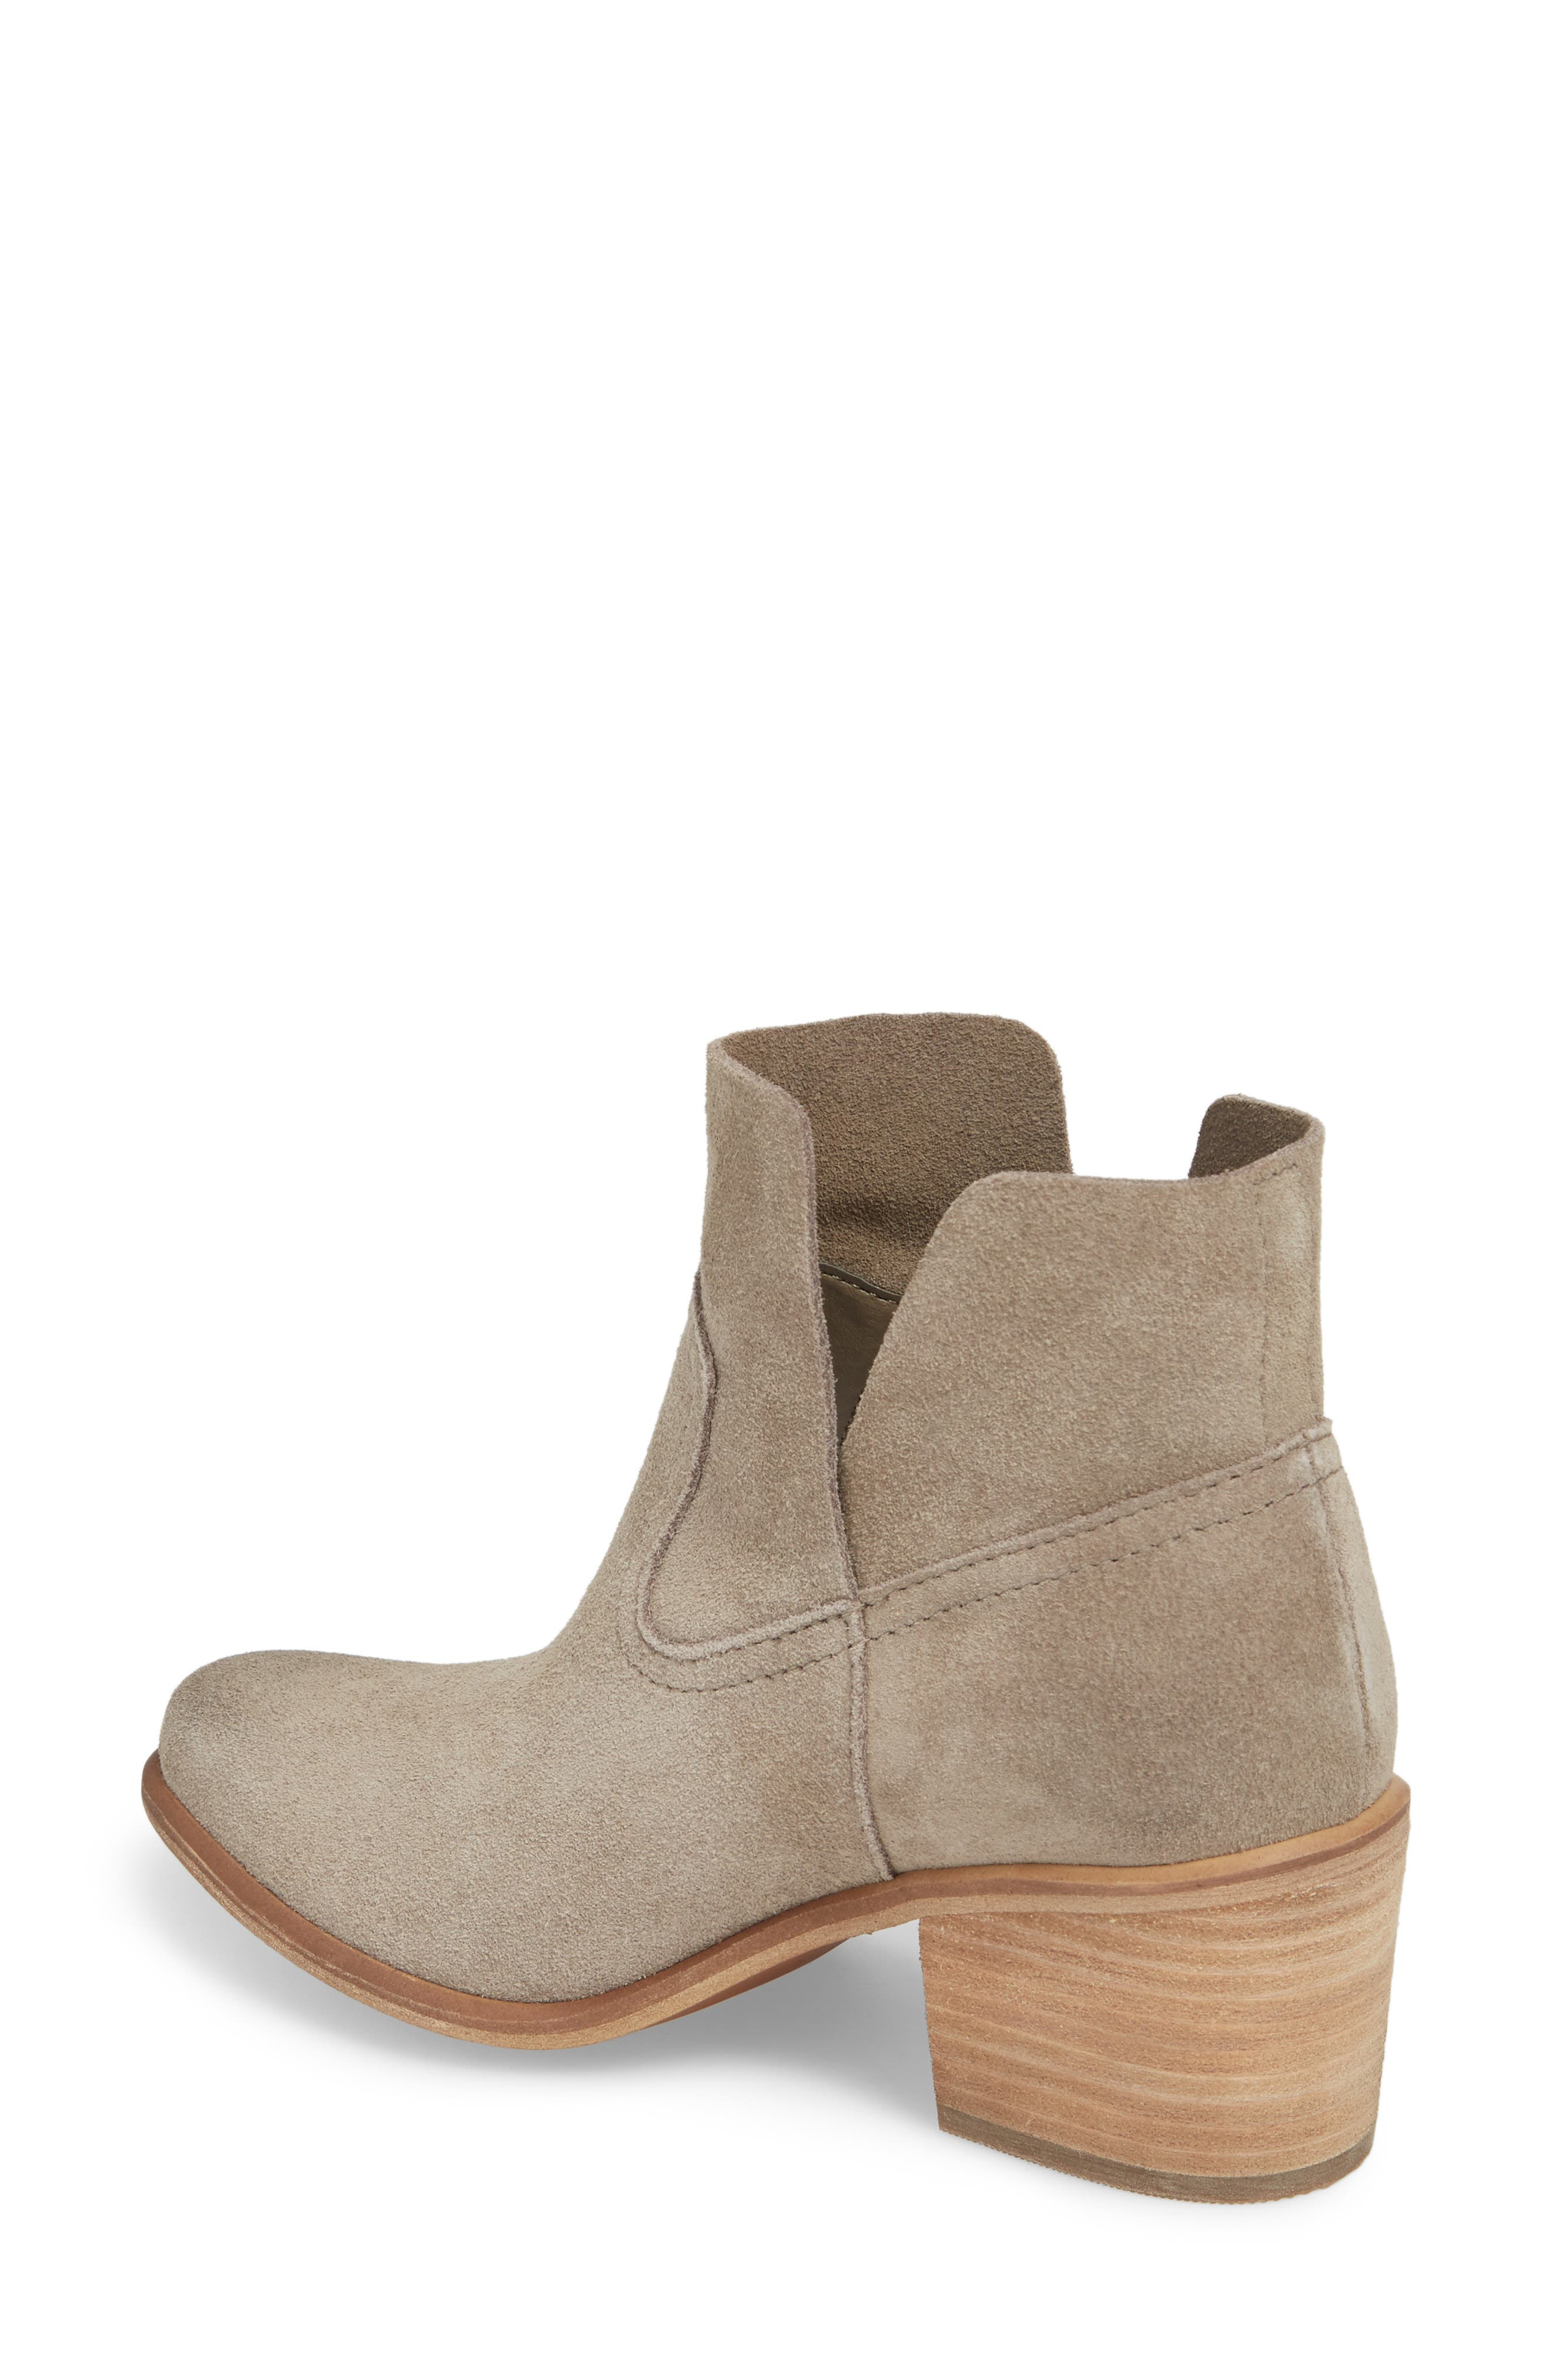 Brice Notched Bootie,                             Alternate thumbnail 2, color,                             Grey Suede